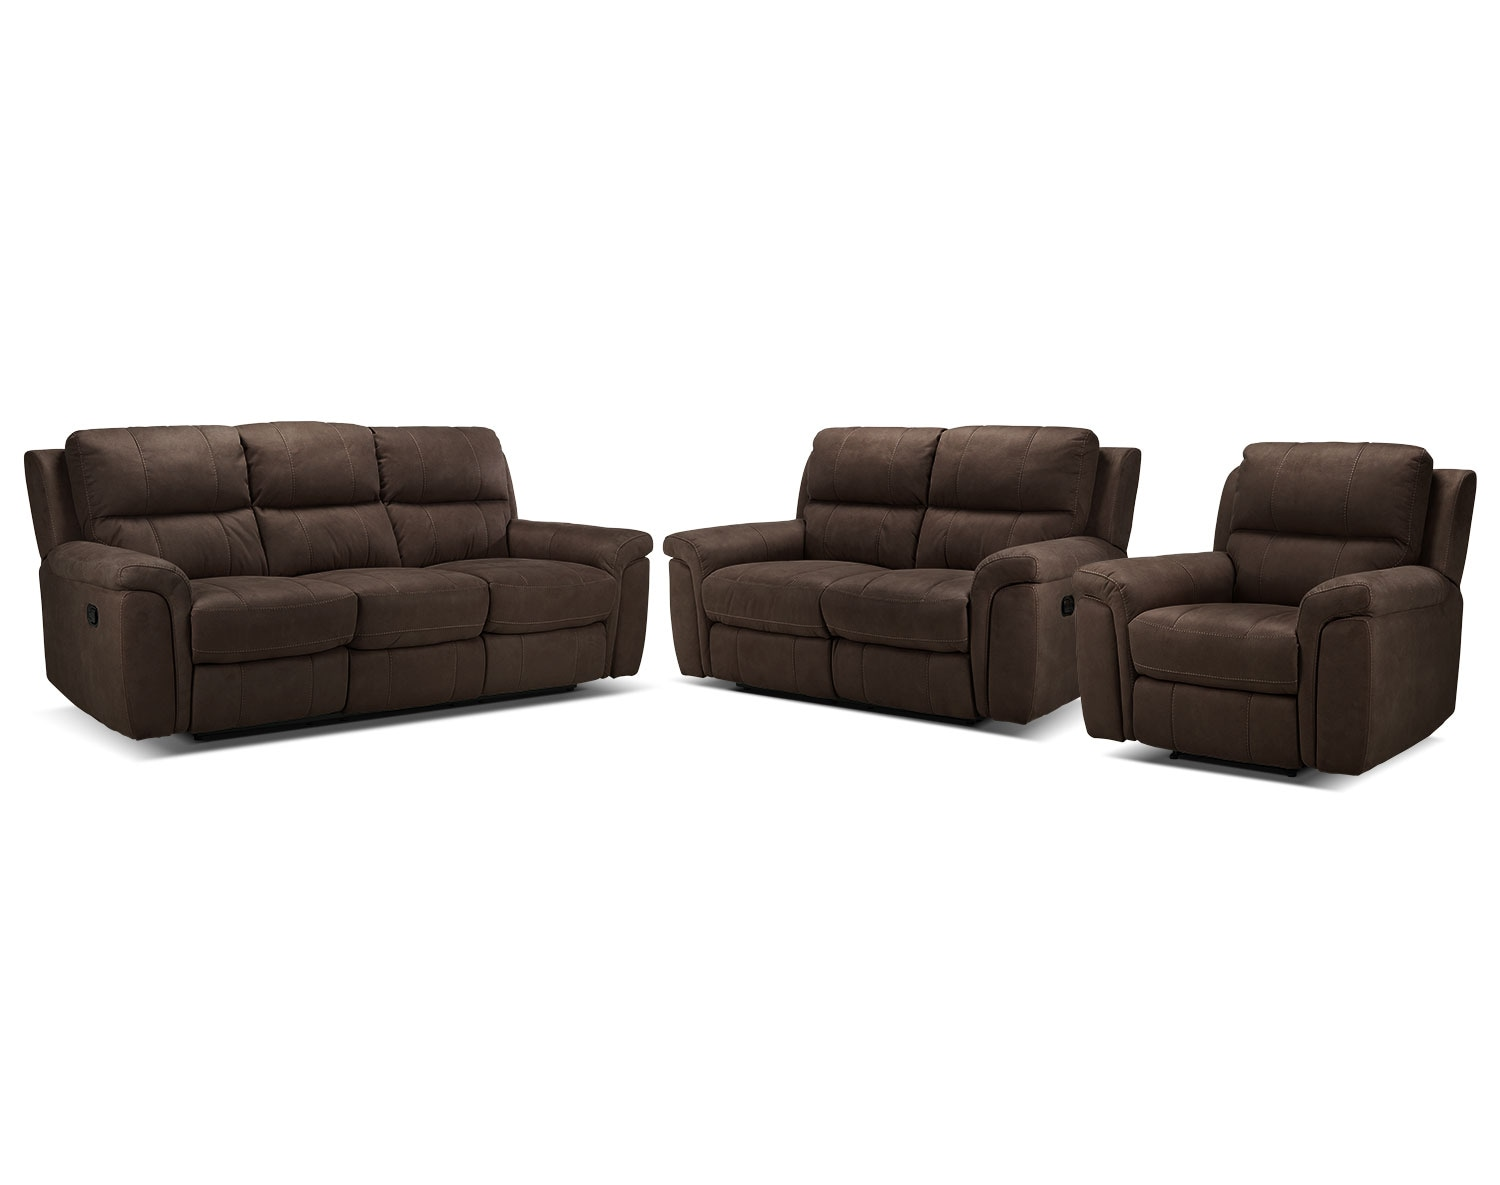 The Roarke Living Room Collection - Walnut